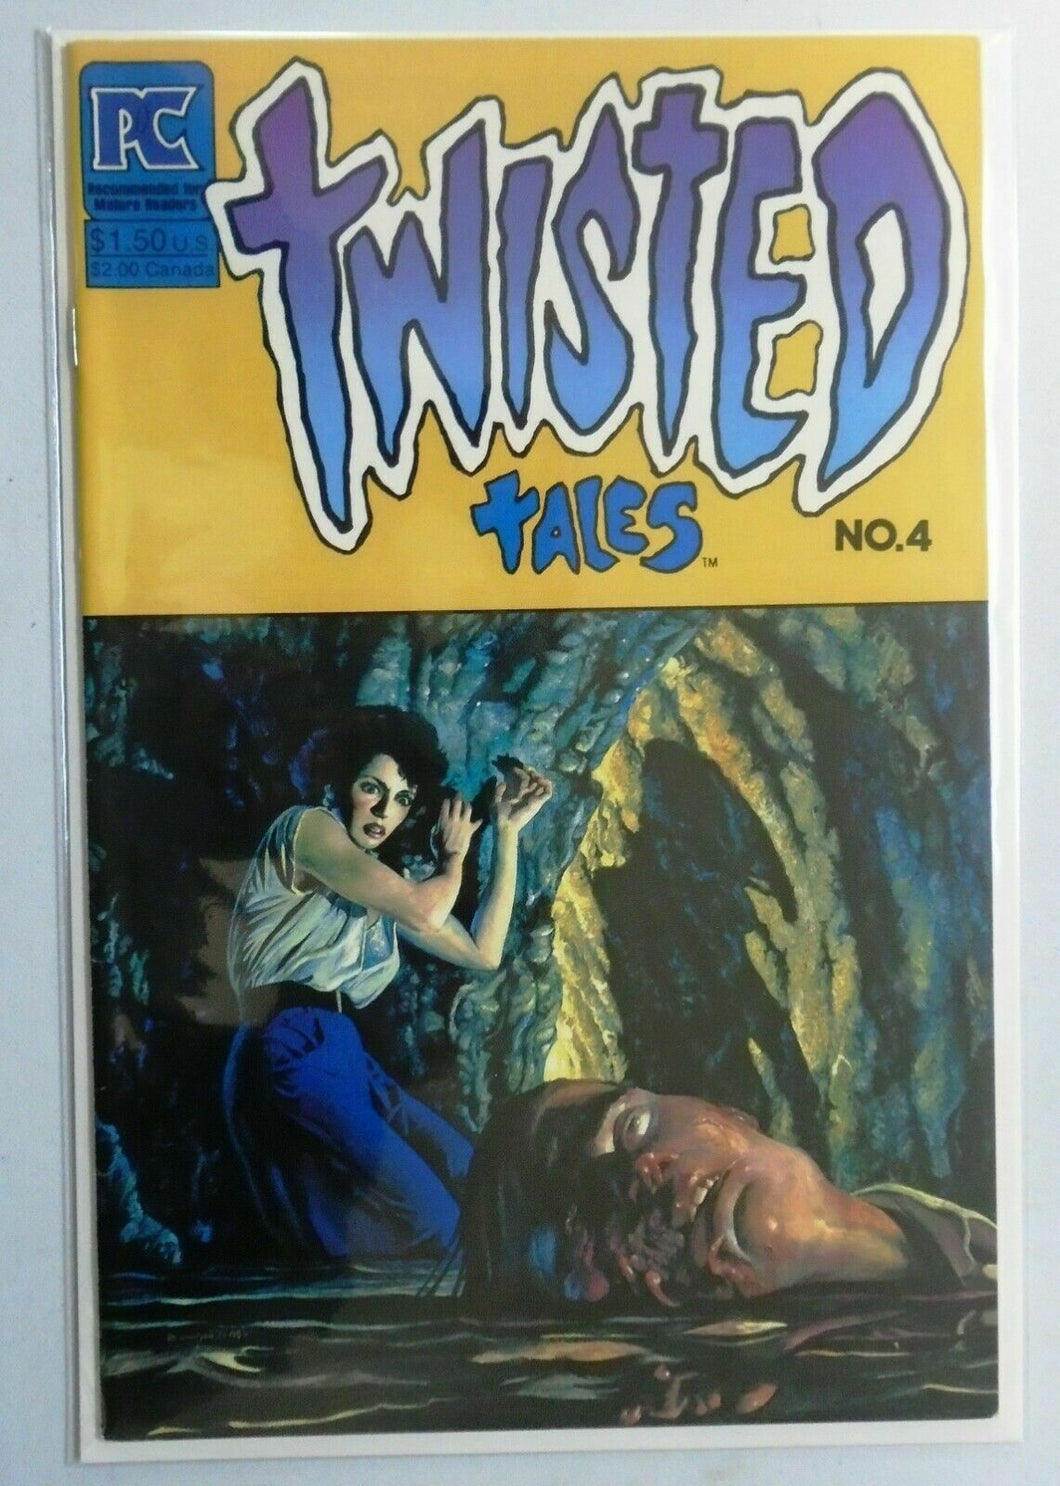 Twisted Tales (Pacific) #4, 7.0 (1983)